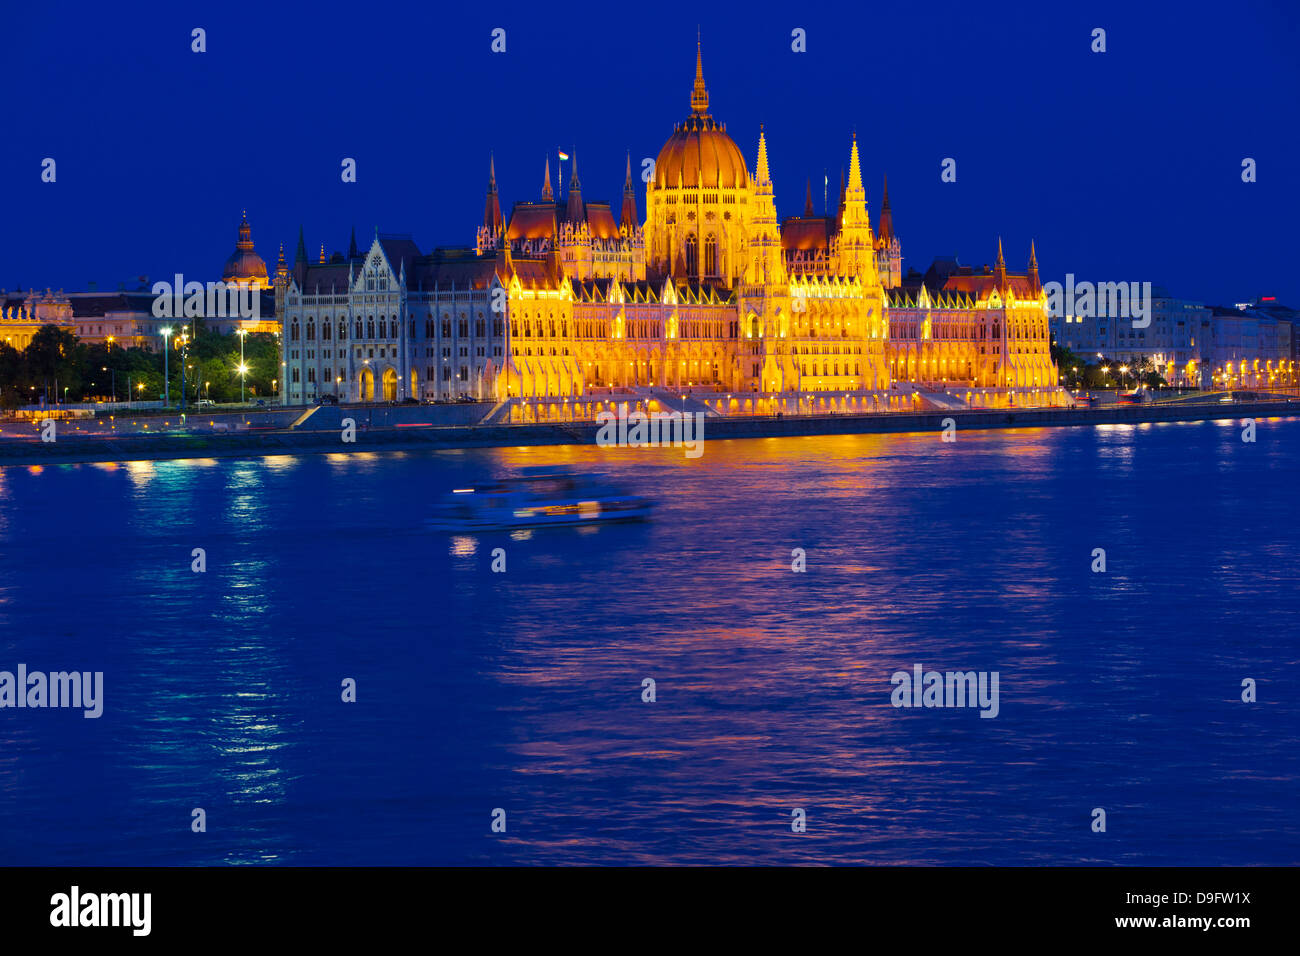 Parliament near the River Danube at night, Budapest, Hungary - Stock Image